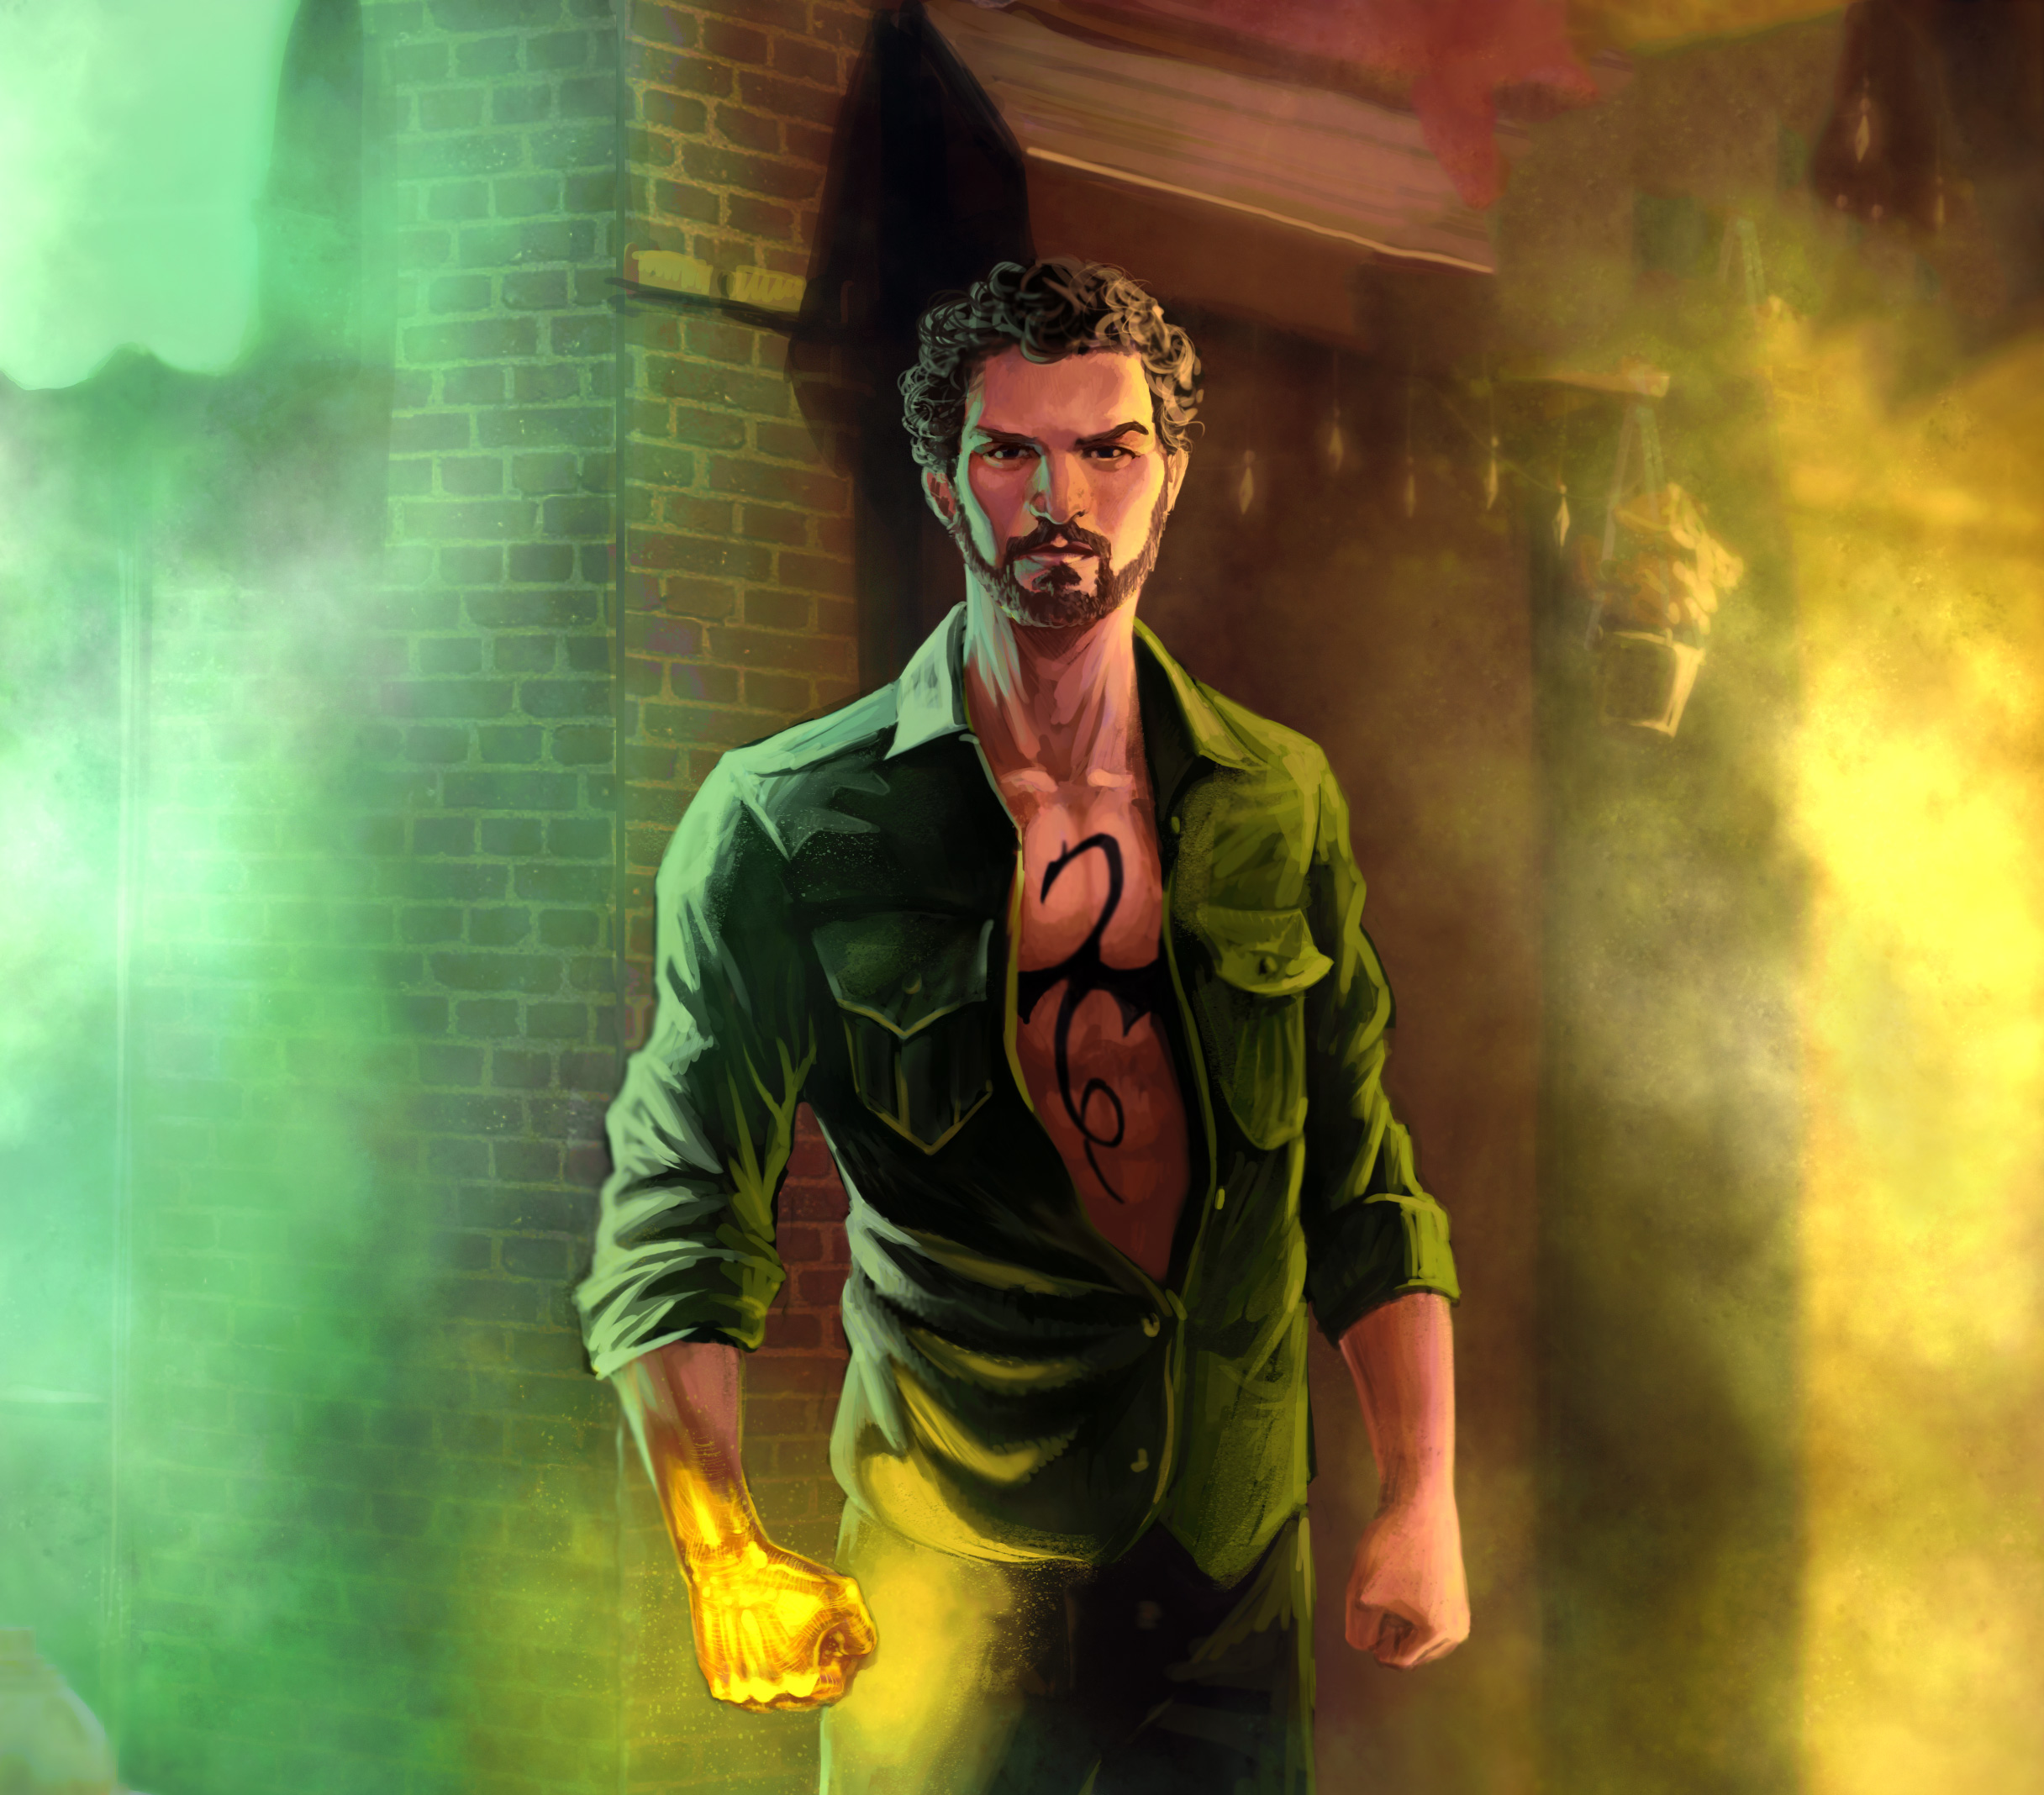 Iron fist in the defenders artwork hd tv shows 4k - Tv series wallpaper 4k ...